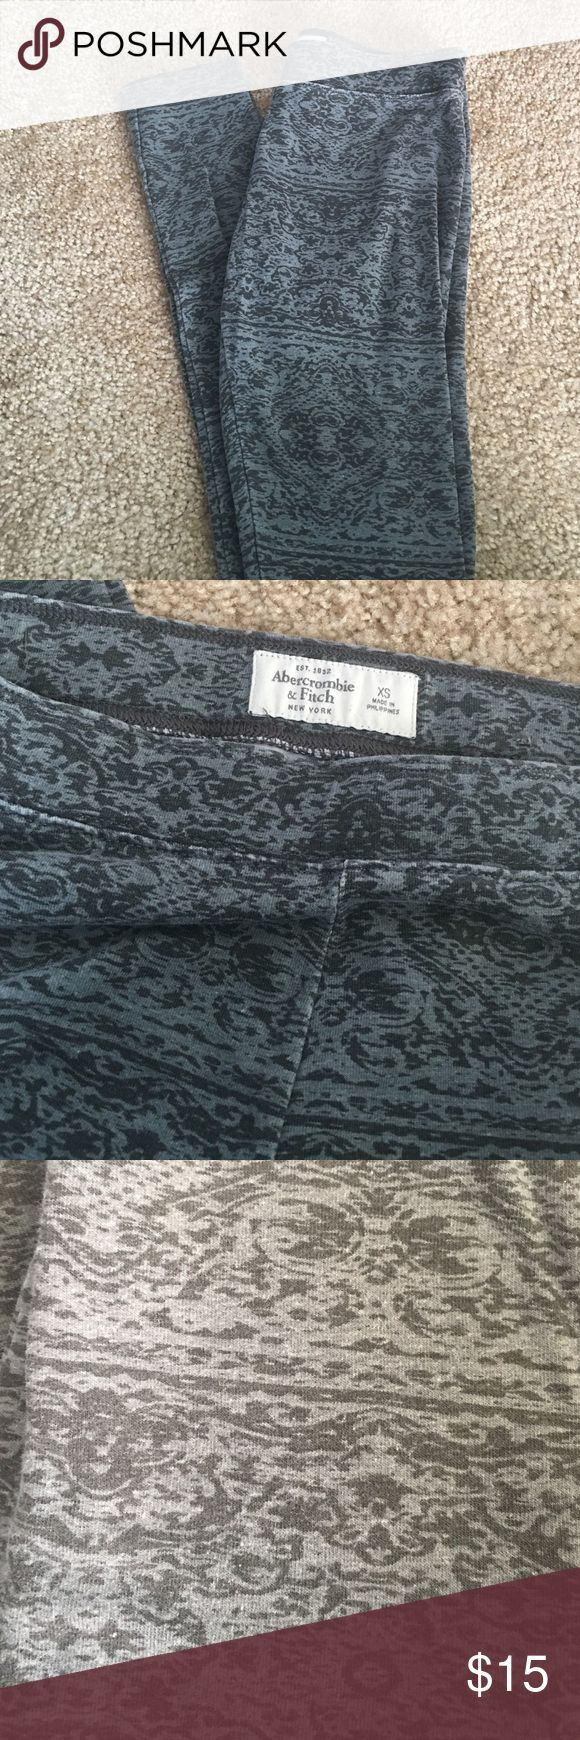 Abercrombie and fitch leggings These are super cute leggings from Abercrombie and fitch. They are in good condition Abercrombie & Fitch Other